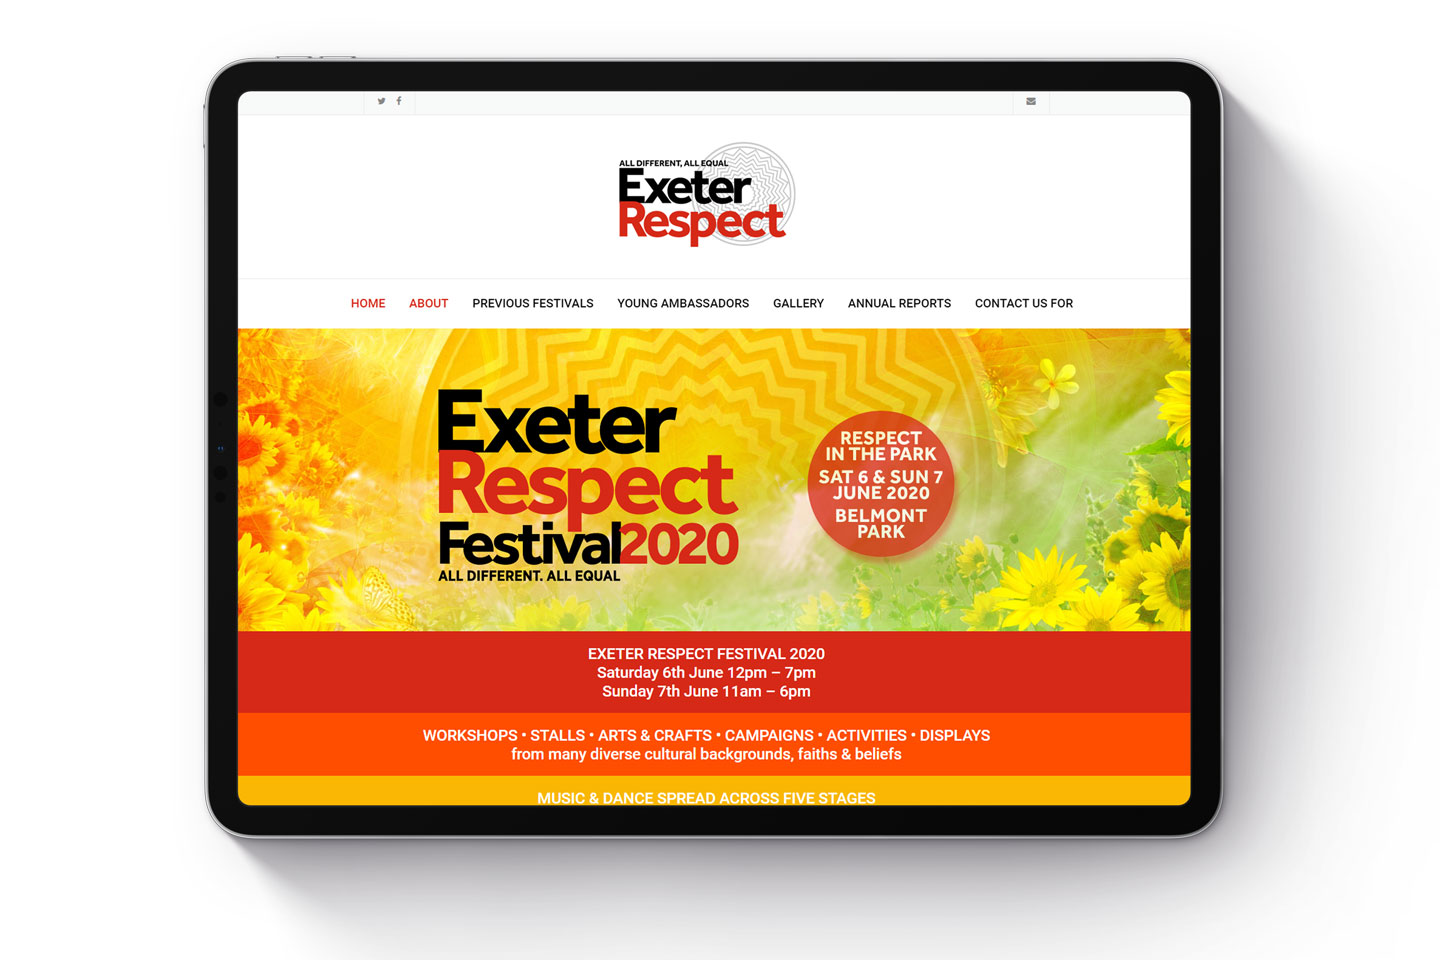 Evolve Promotion - Exeter Respect Festival Website